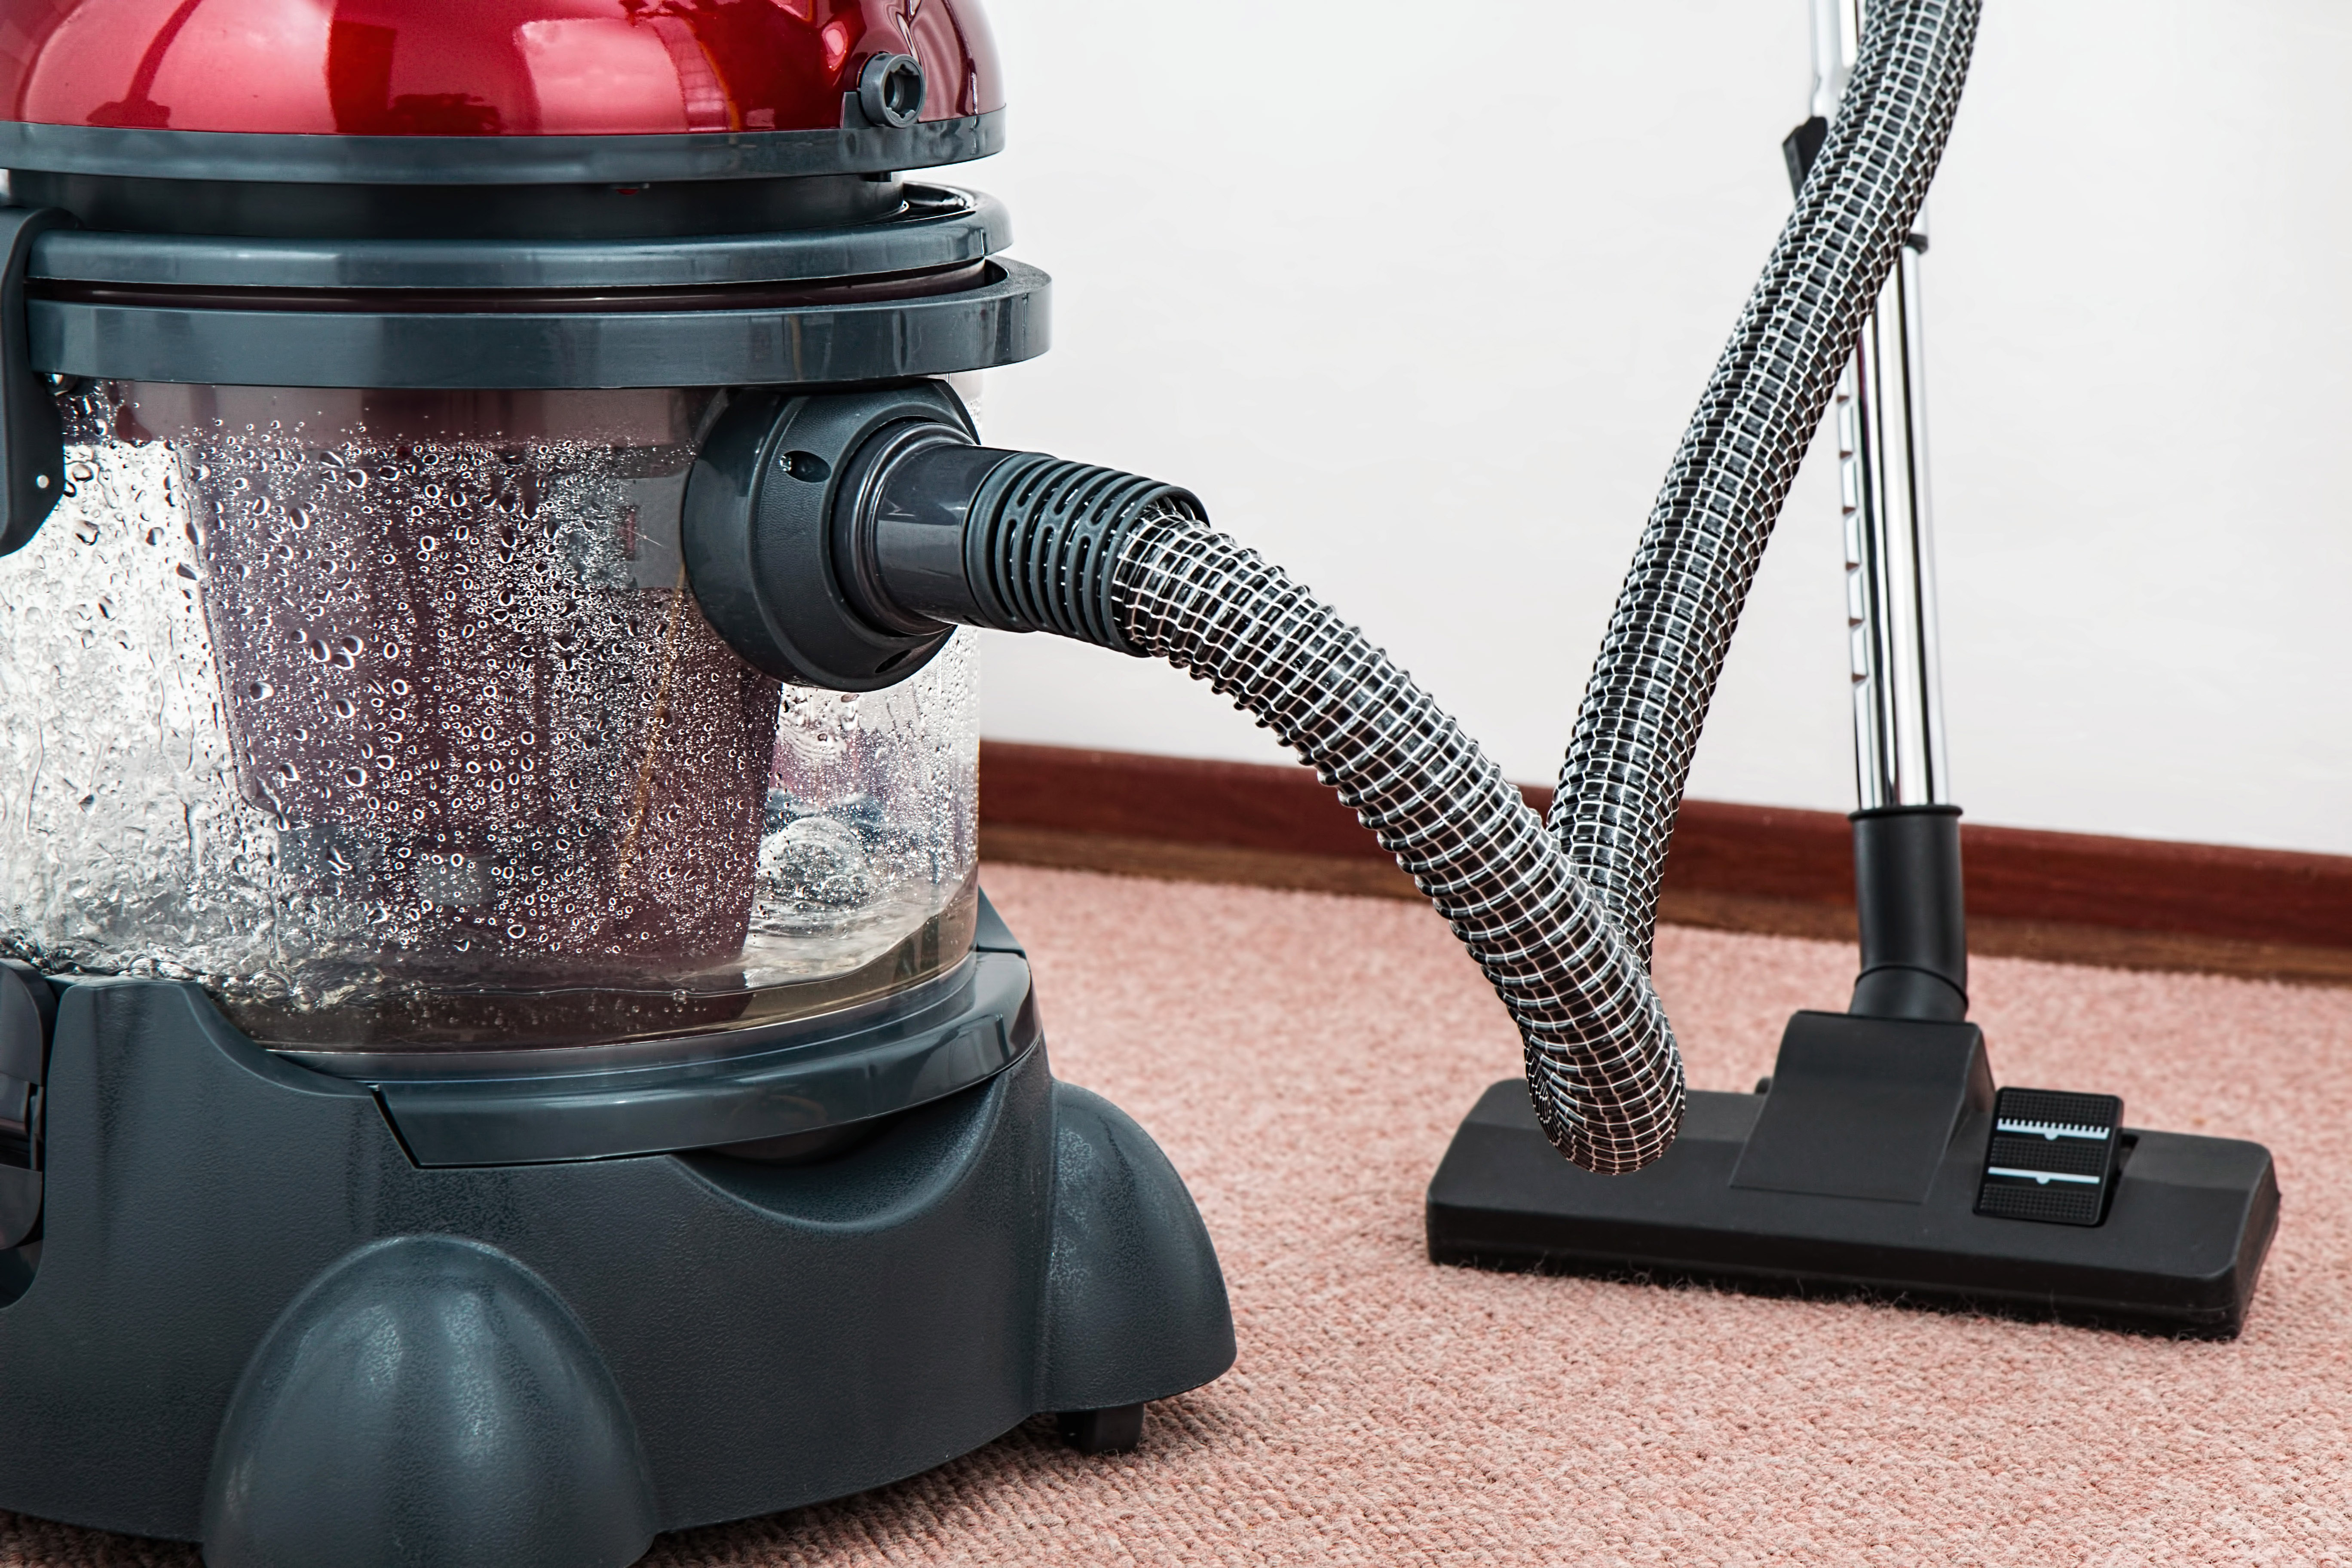 Red deep cleaner vacuum on carpet